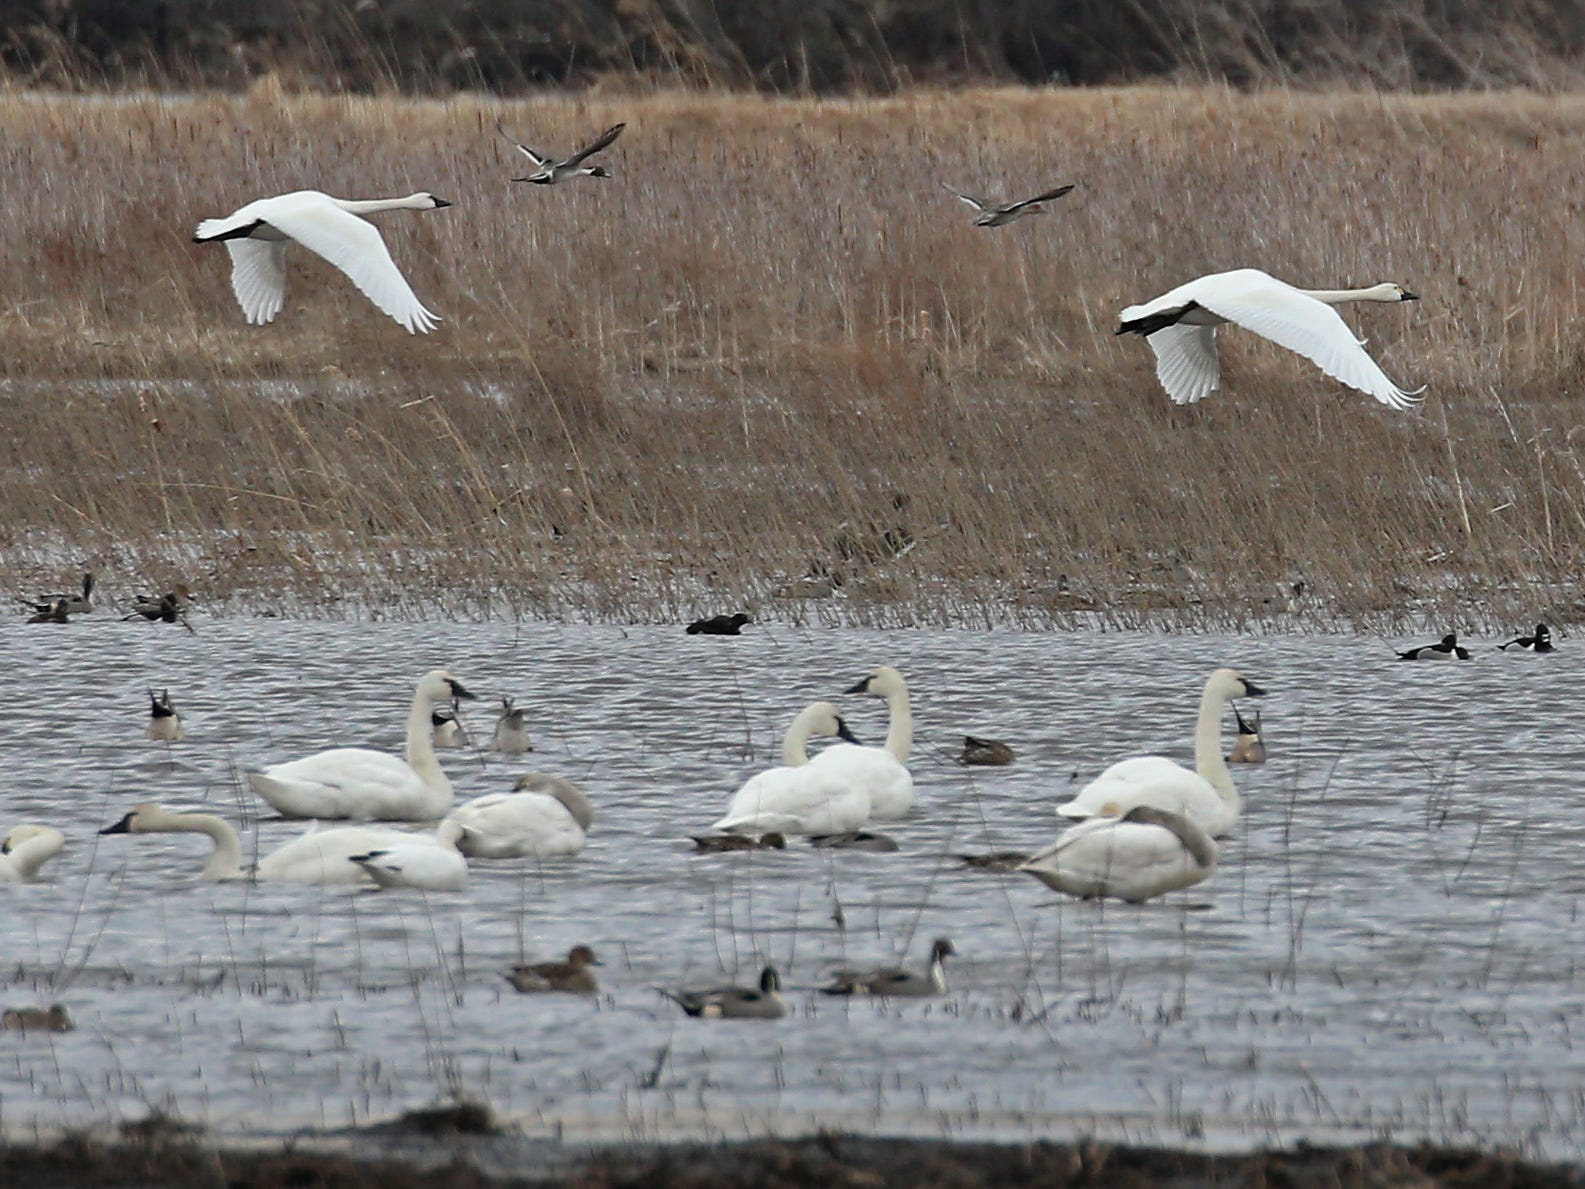 A pair of Tundra Swans take off from a flooded field outside Savannah Thursday, March 21, 2019.